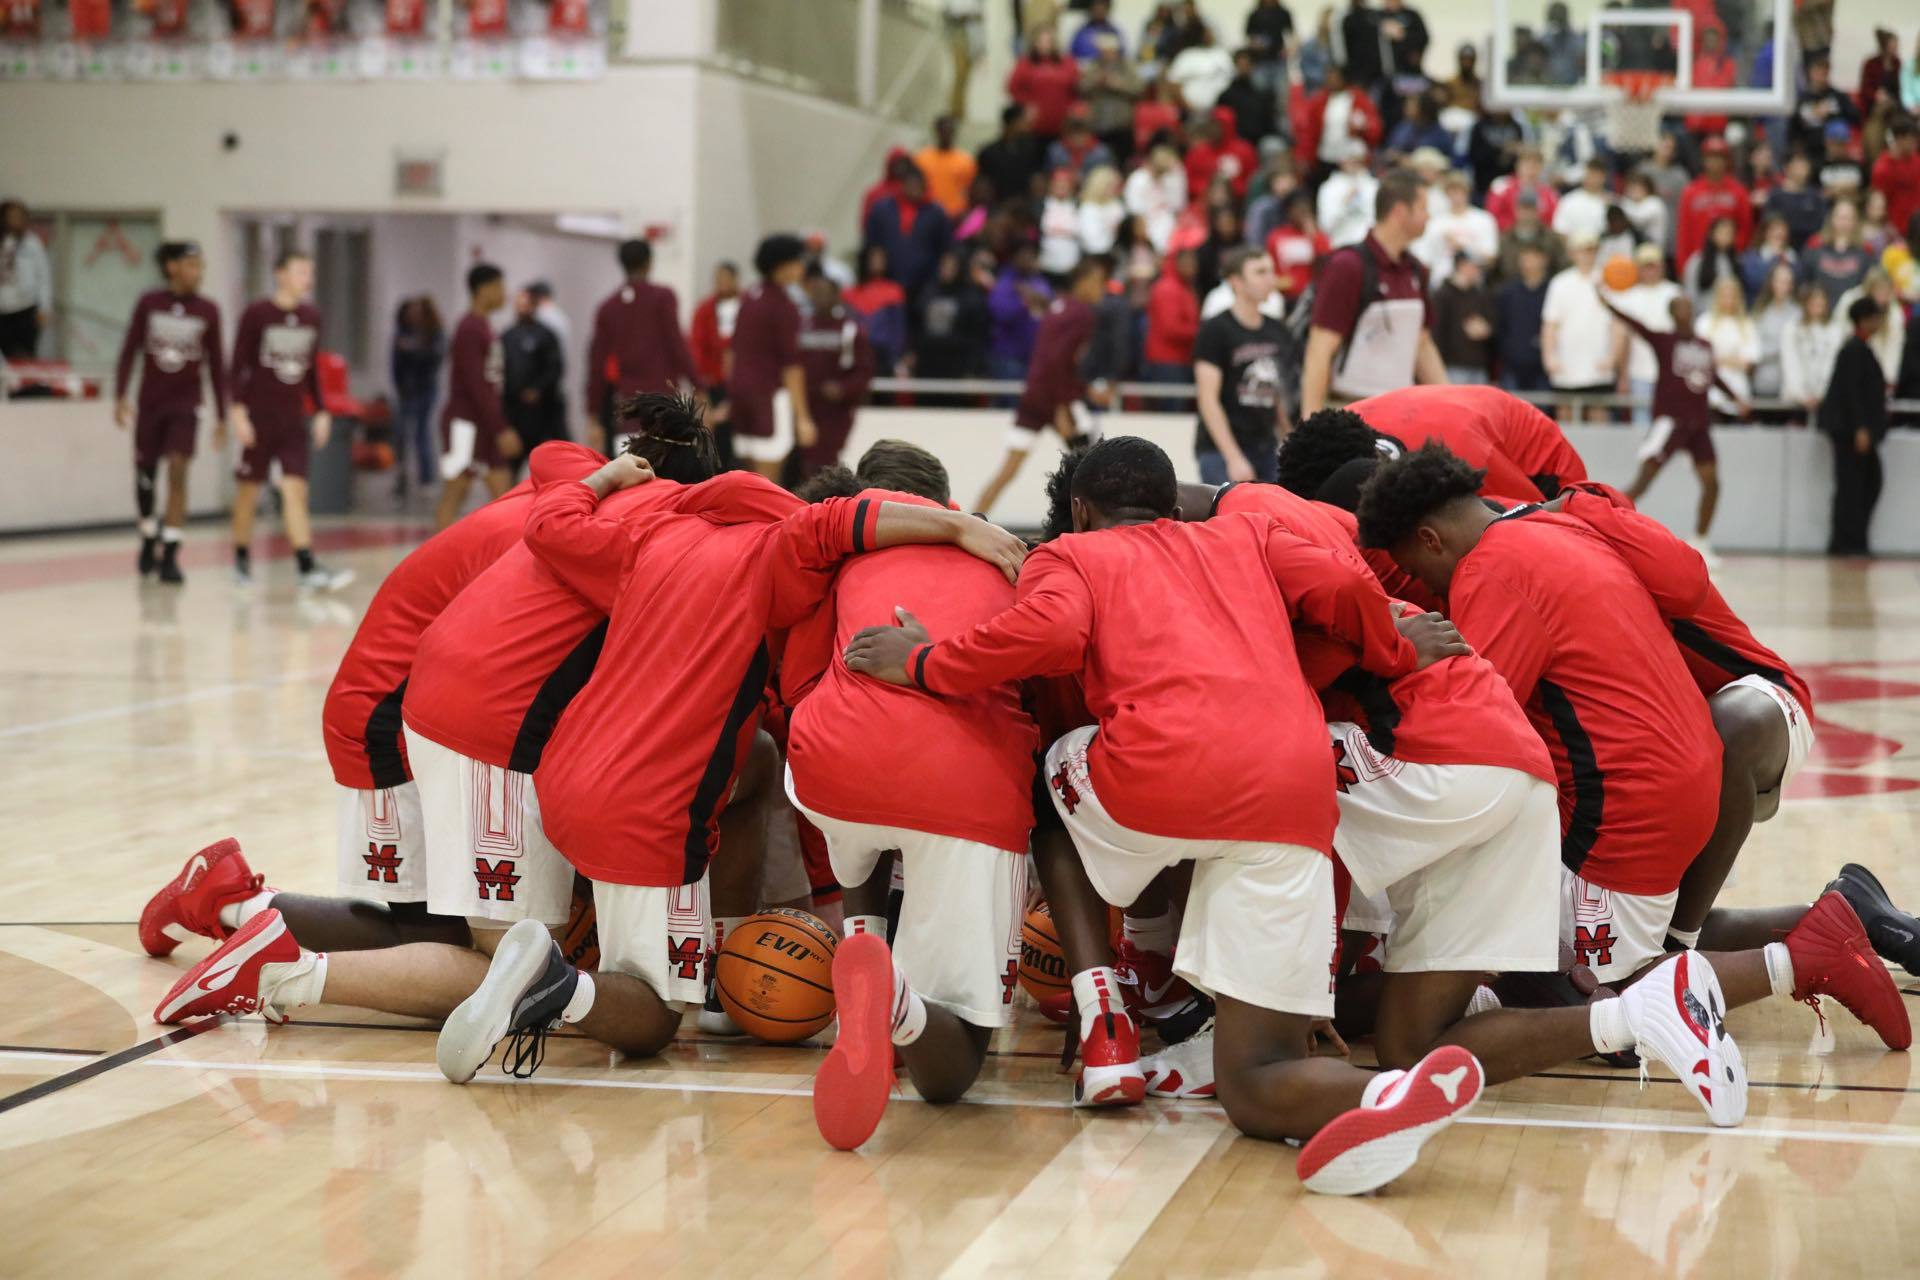 Basketball team huddled before a game.